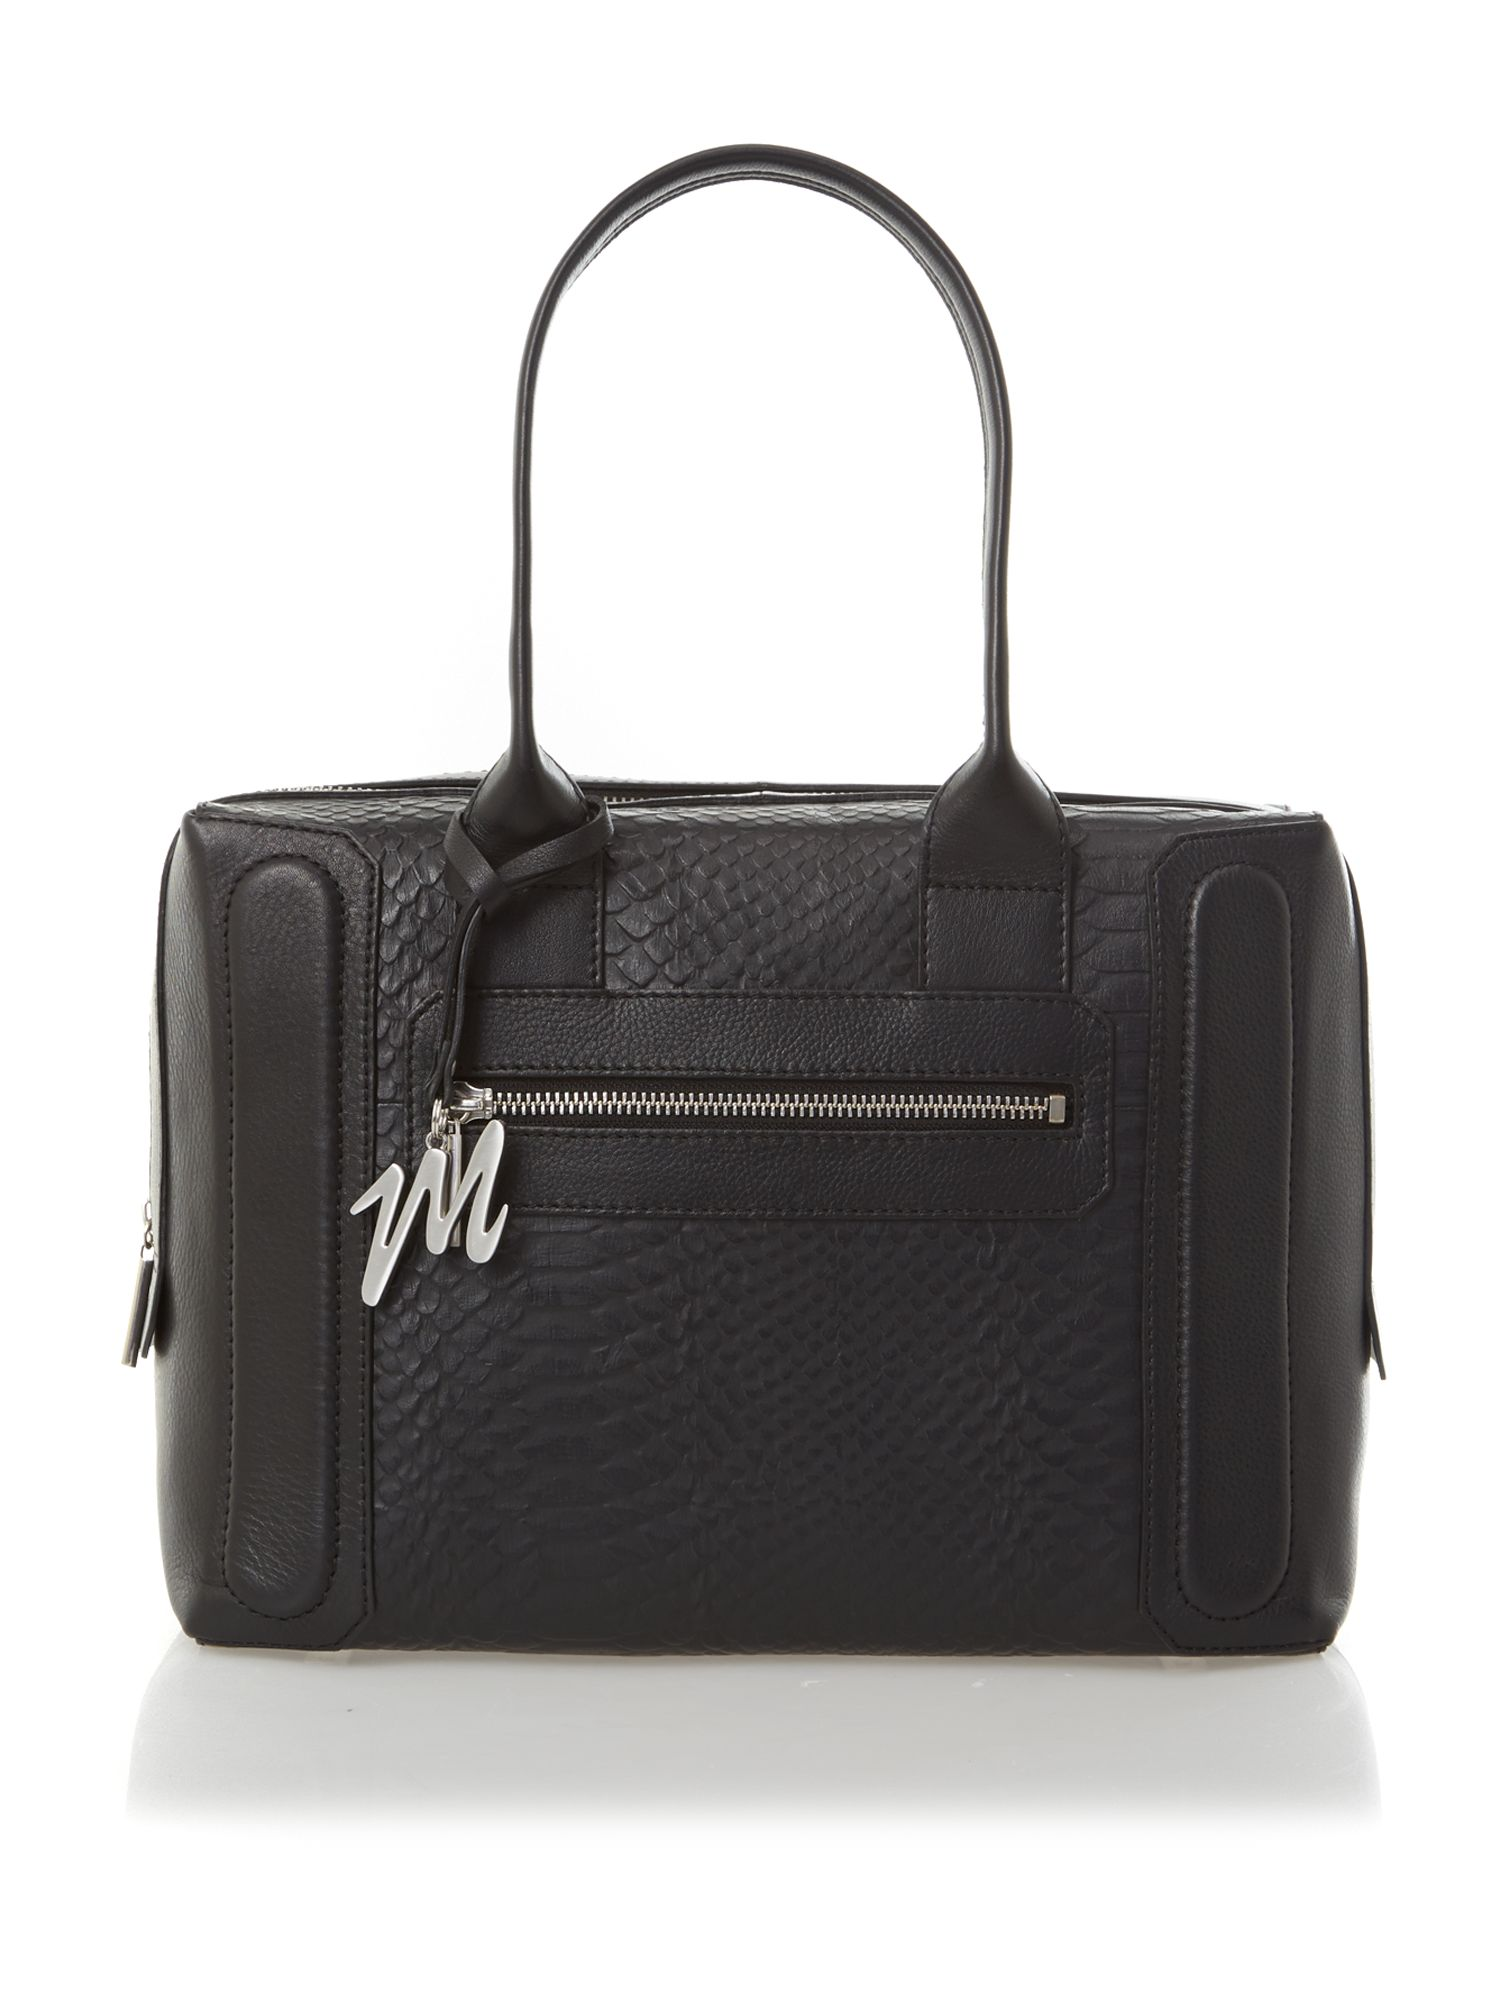 Ellington bowler bag